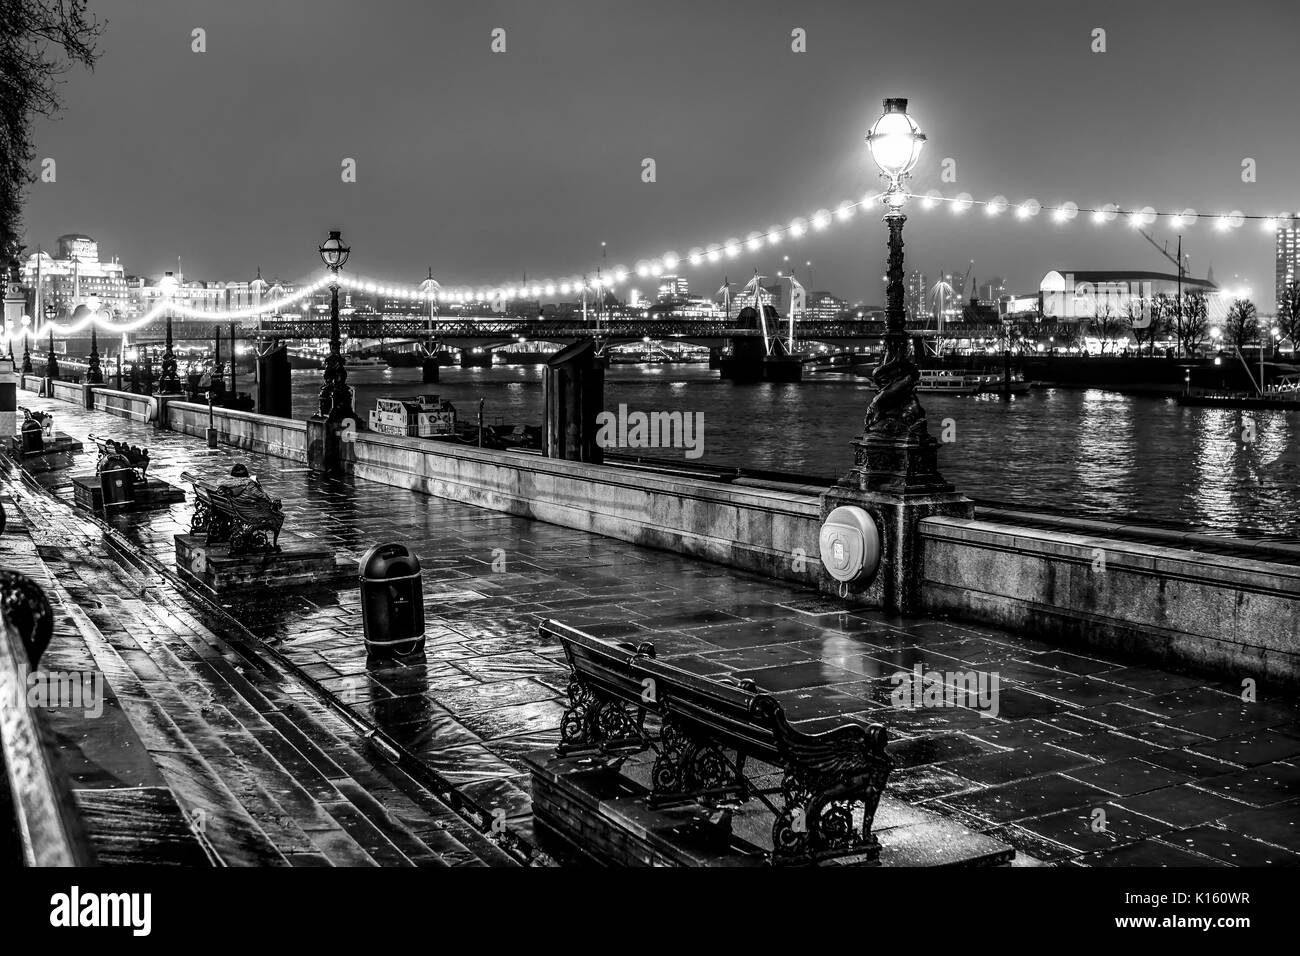 The wonderful banks of River Thames in London - a romantic place - LONDON / ENGLAND - DECEMBER 6, 2017 - Stock Image